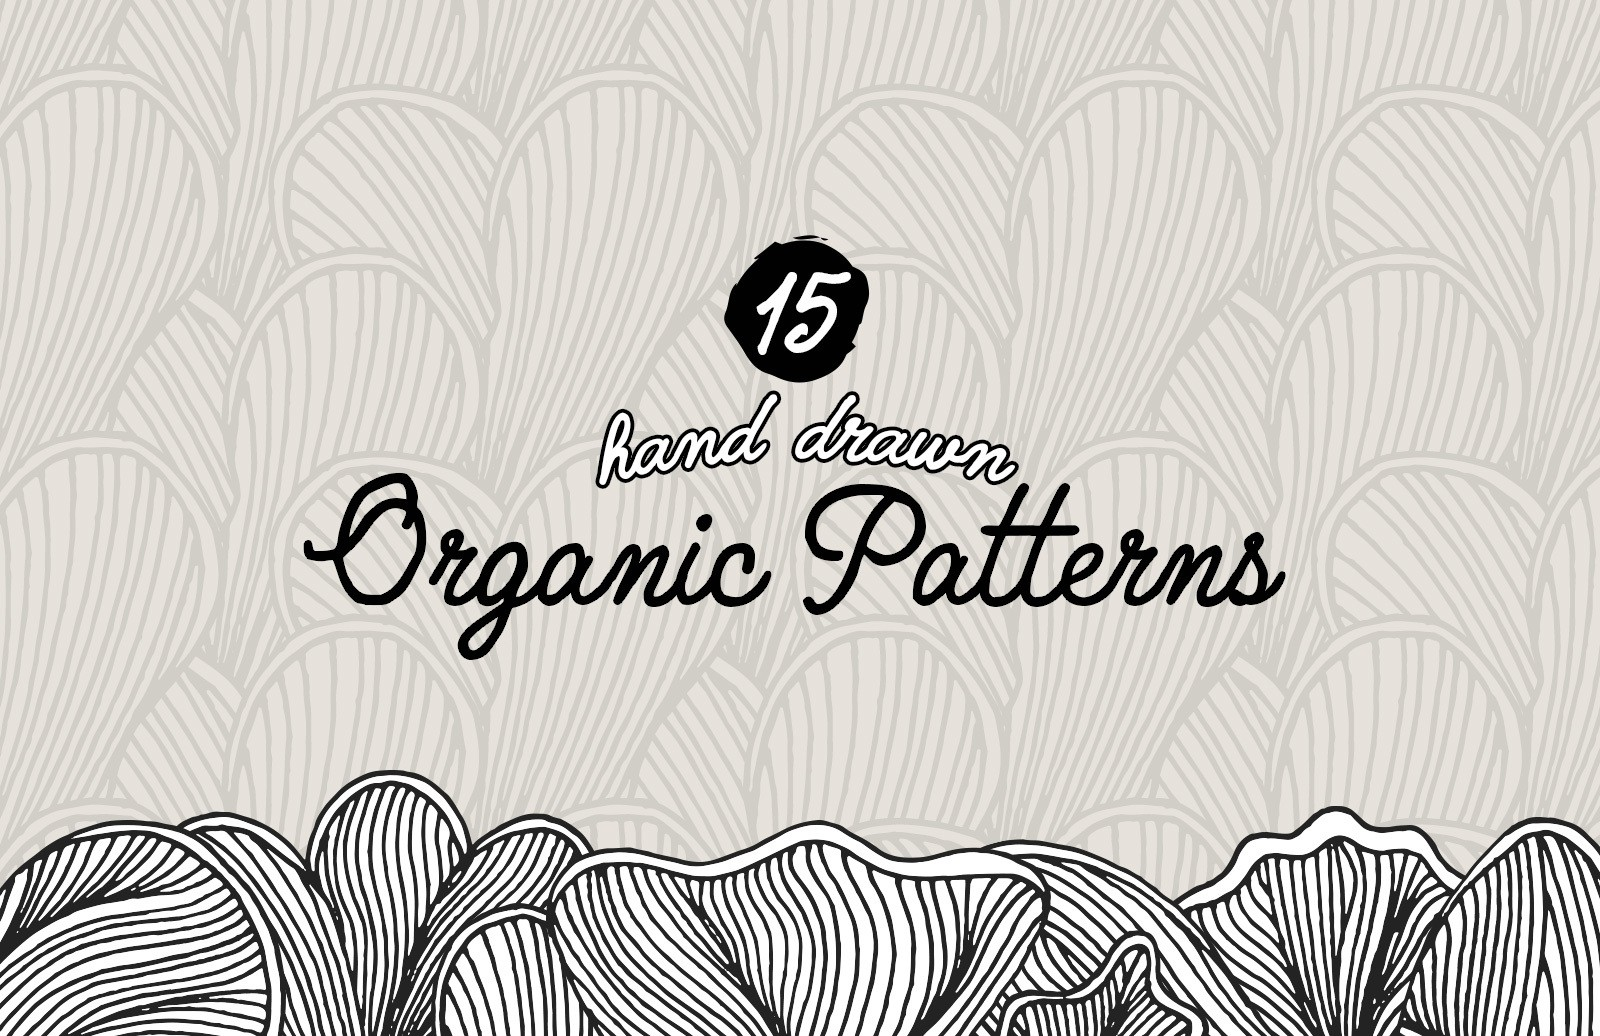 Hand Drawn Organic Patterns Preview 1